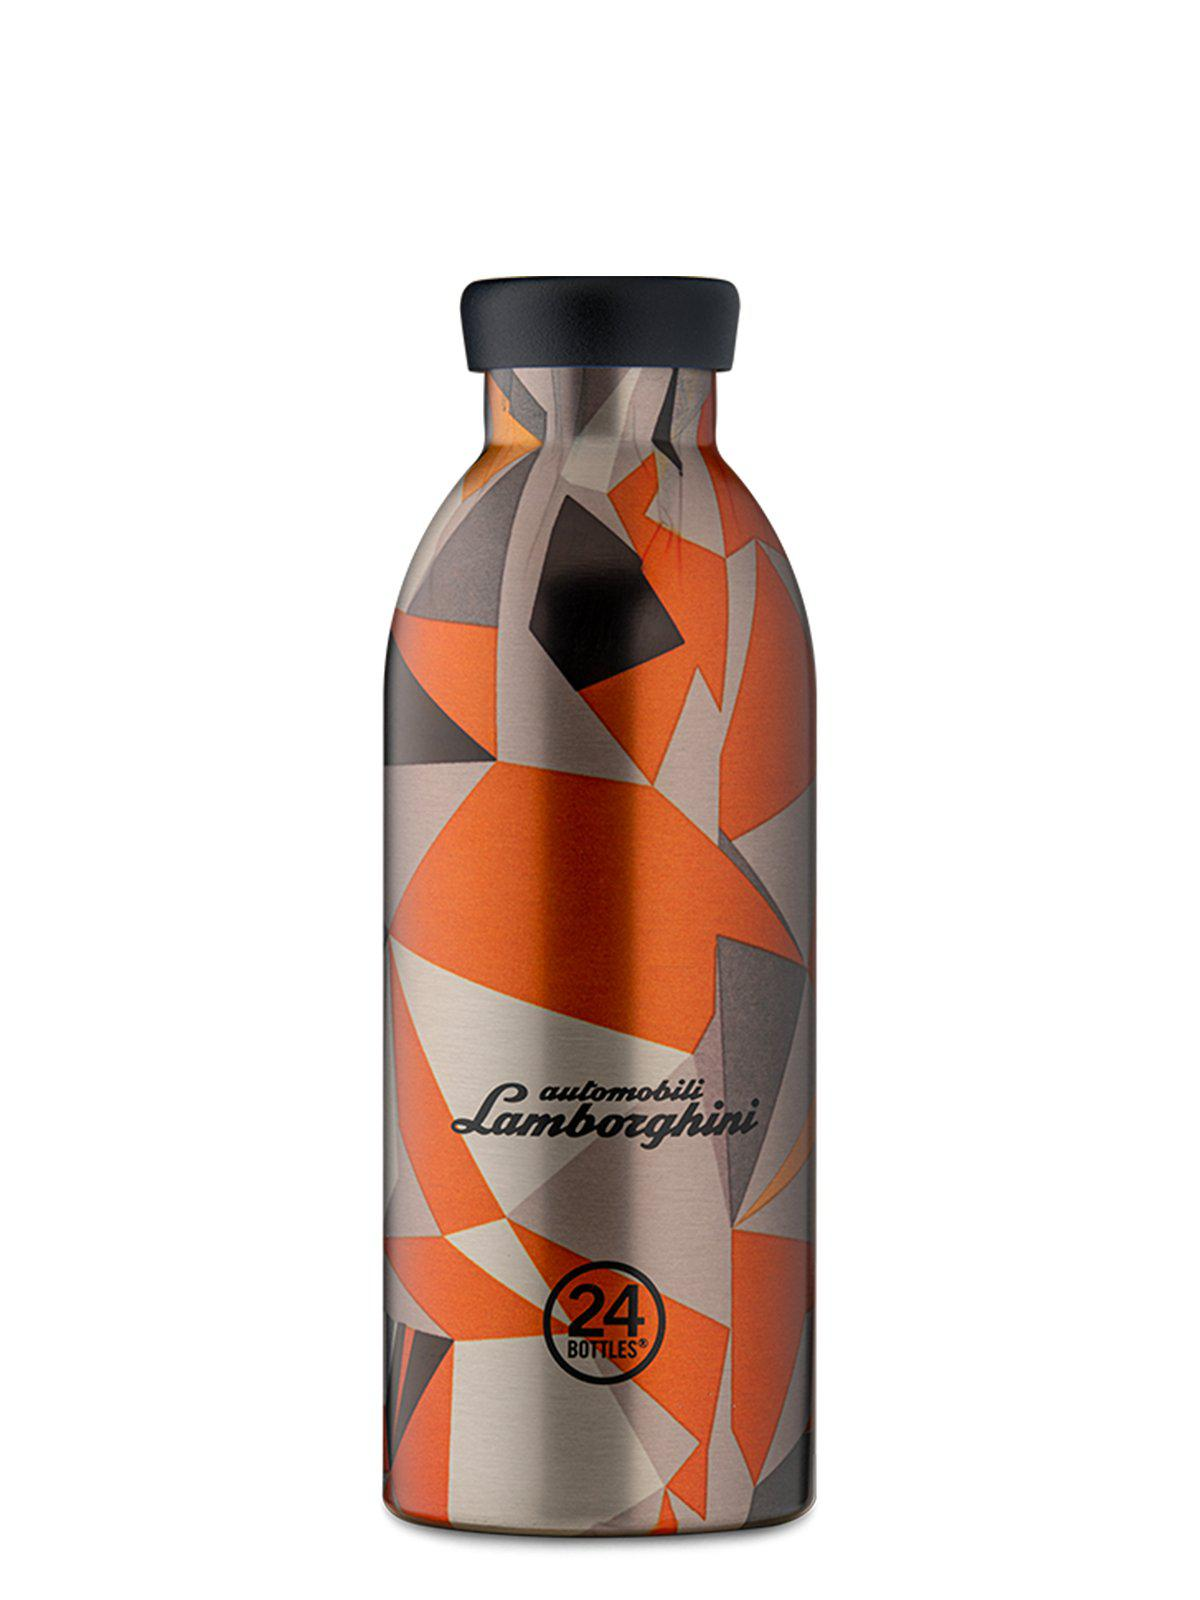 24Bottles x Automobili Lamborghini Clima Bottle 500ml - MORE by Morello - Indonesia